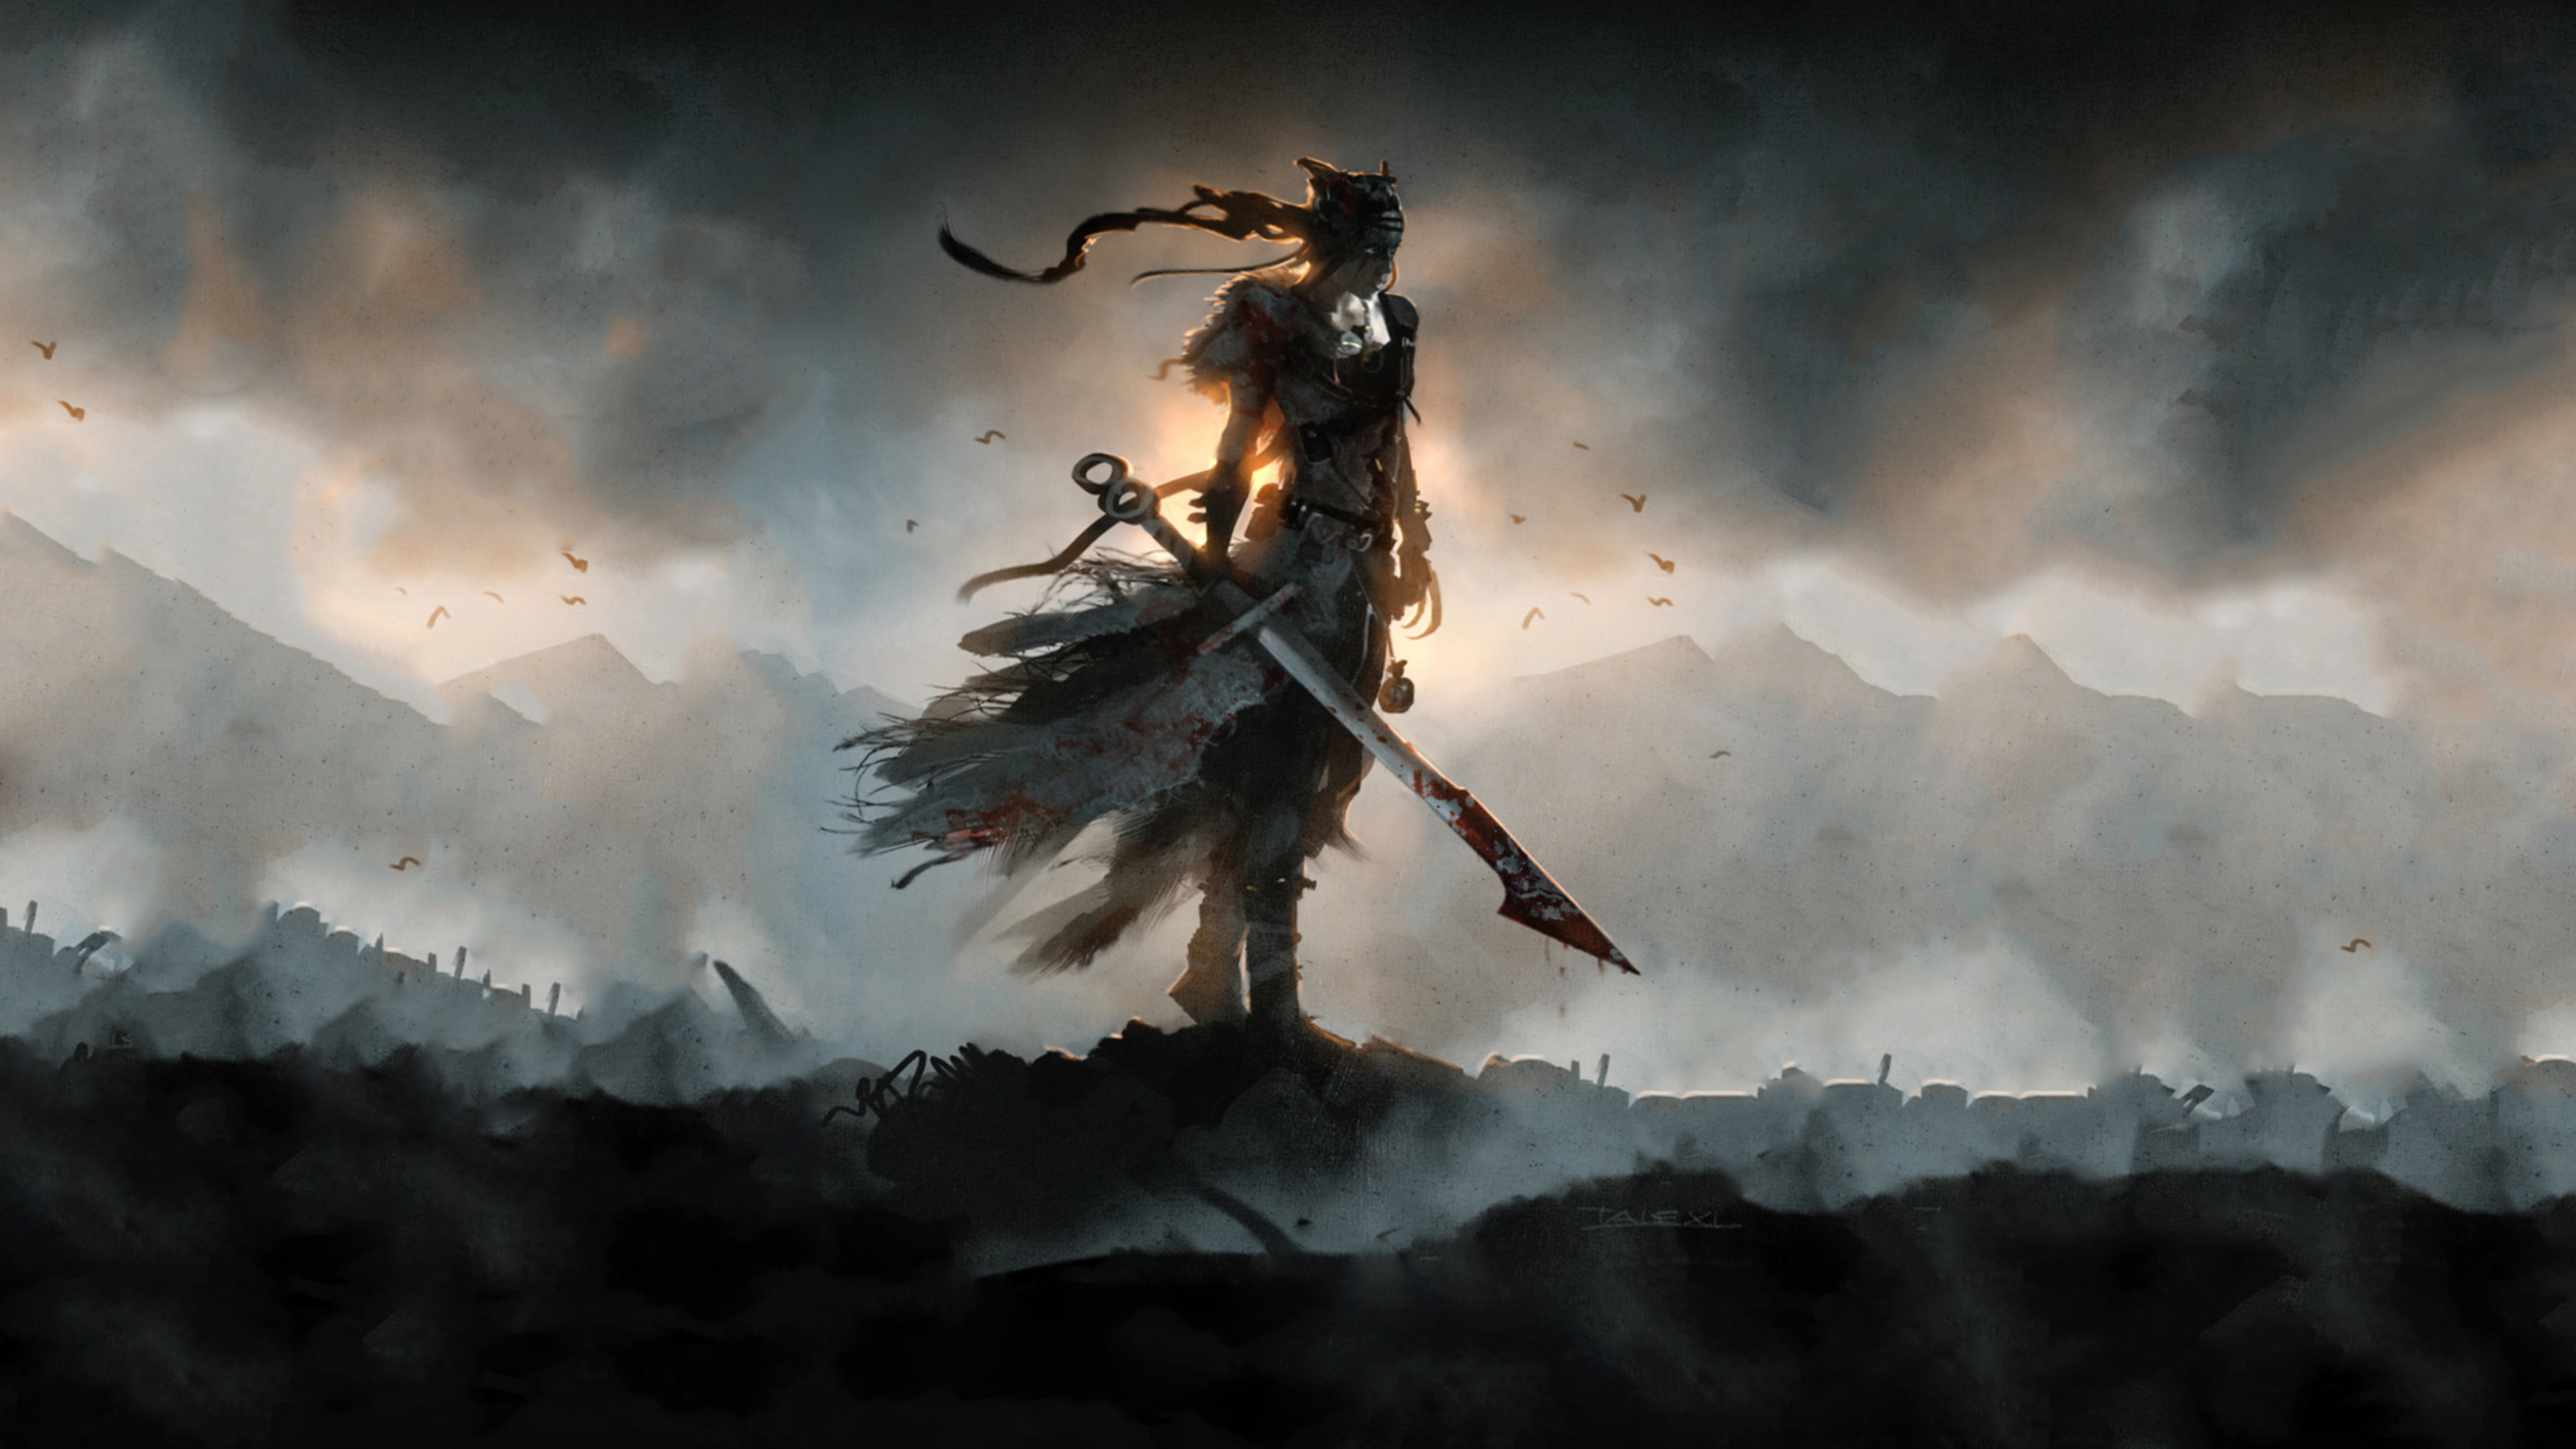 Wallpaper Warrior Posted By Sarah Anderson